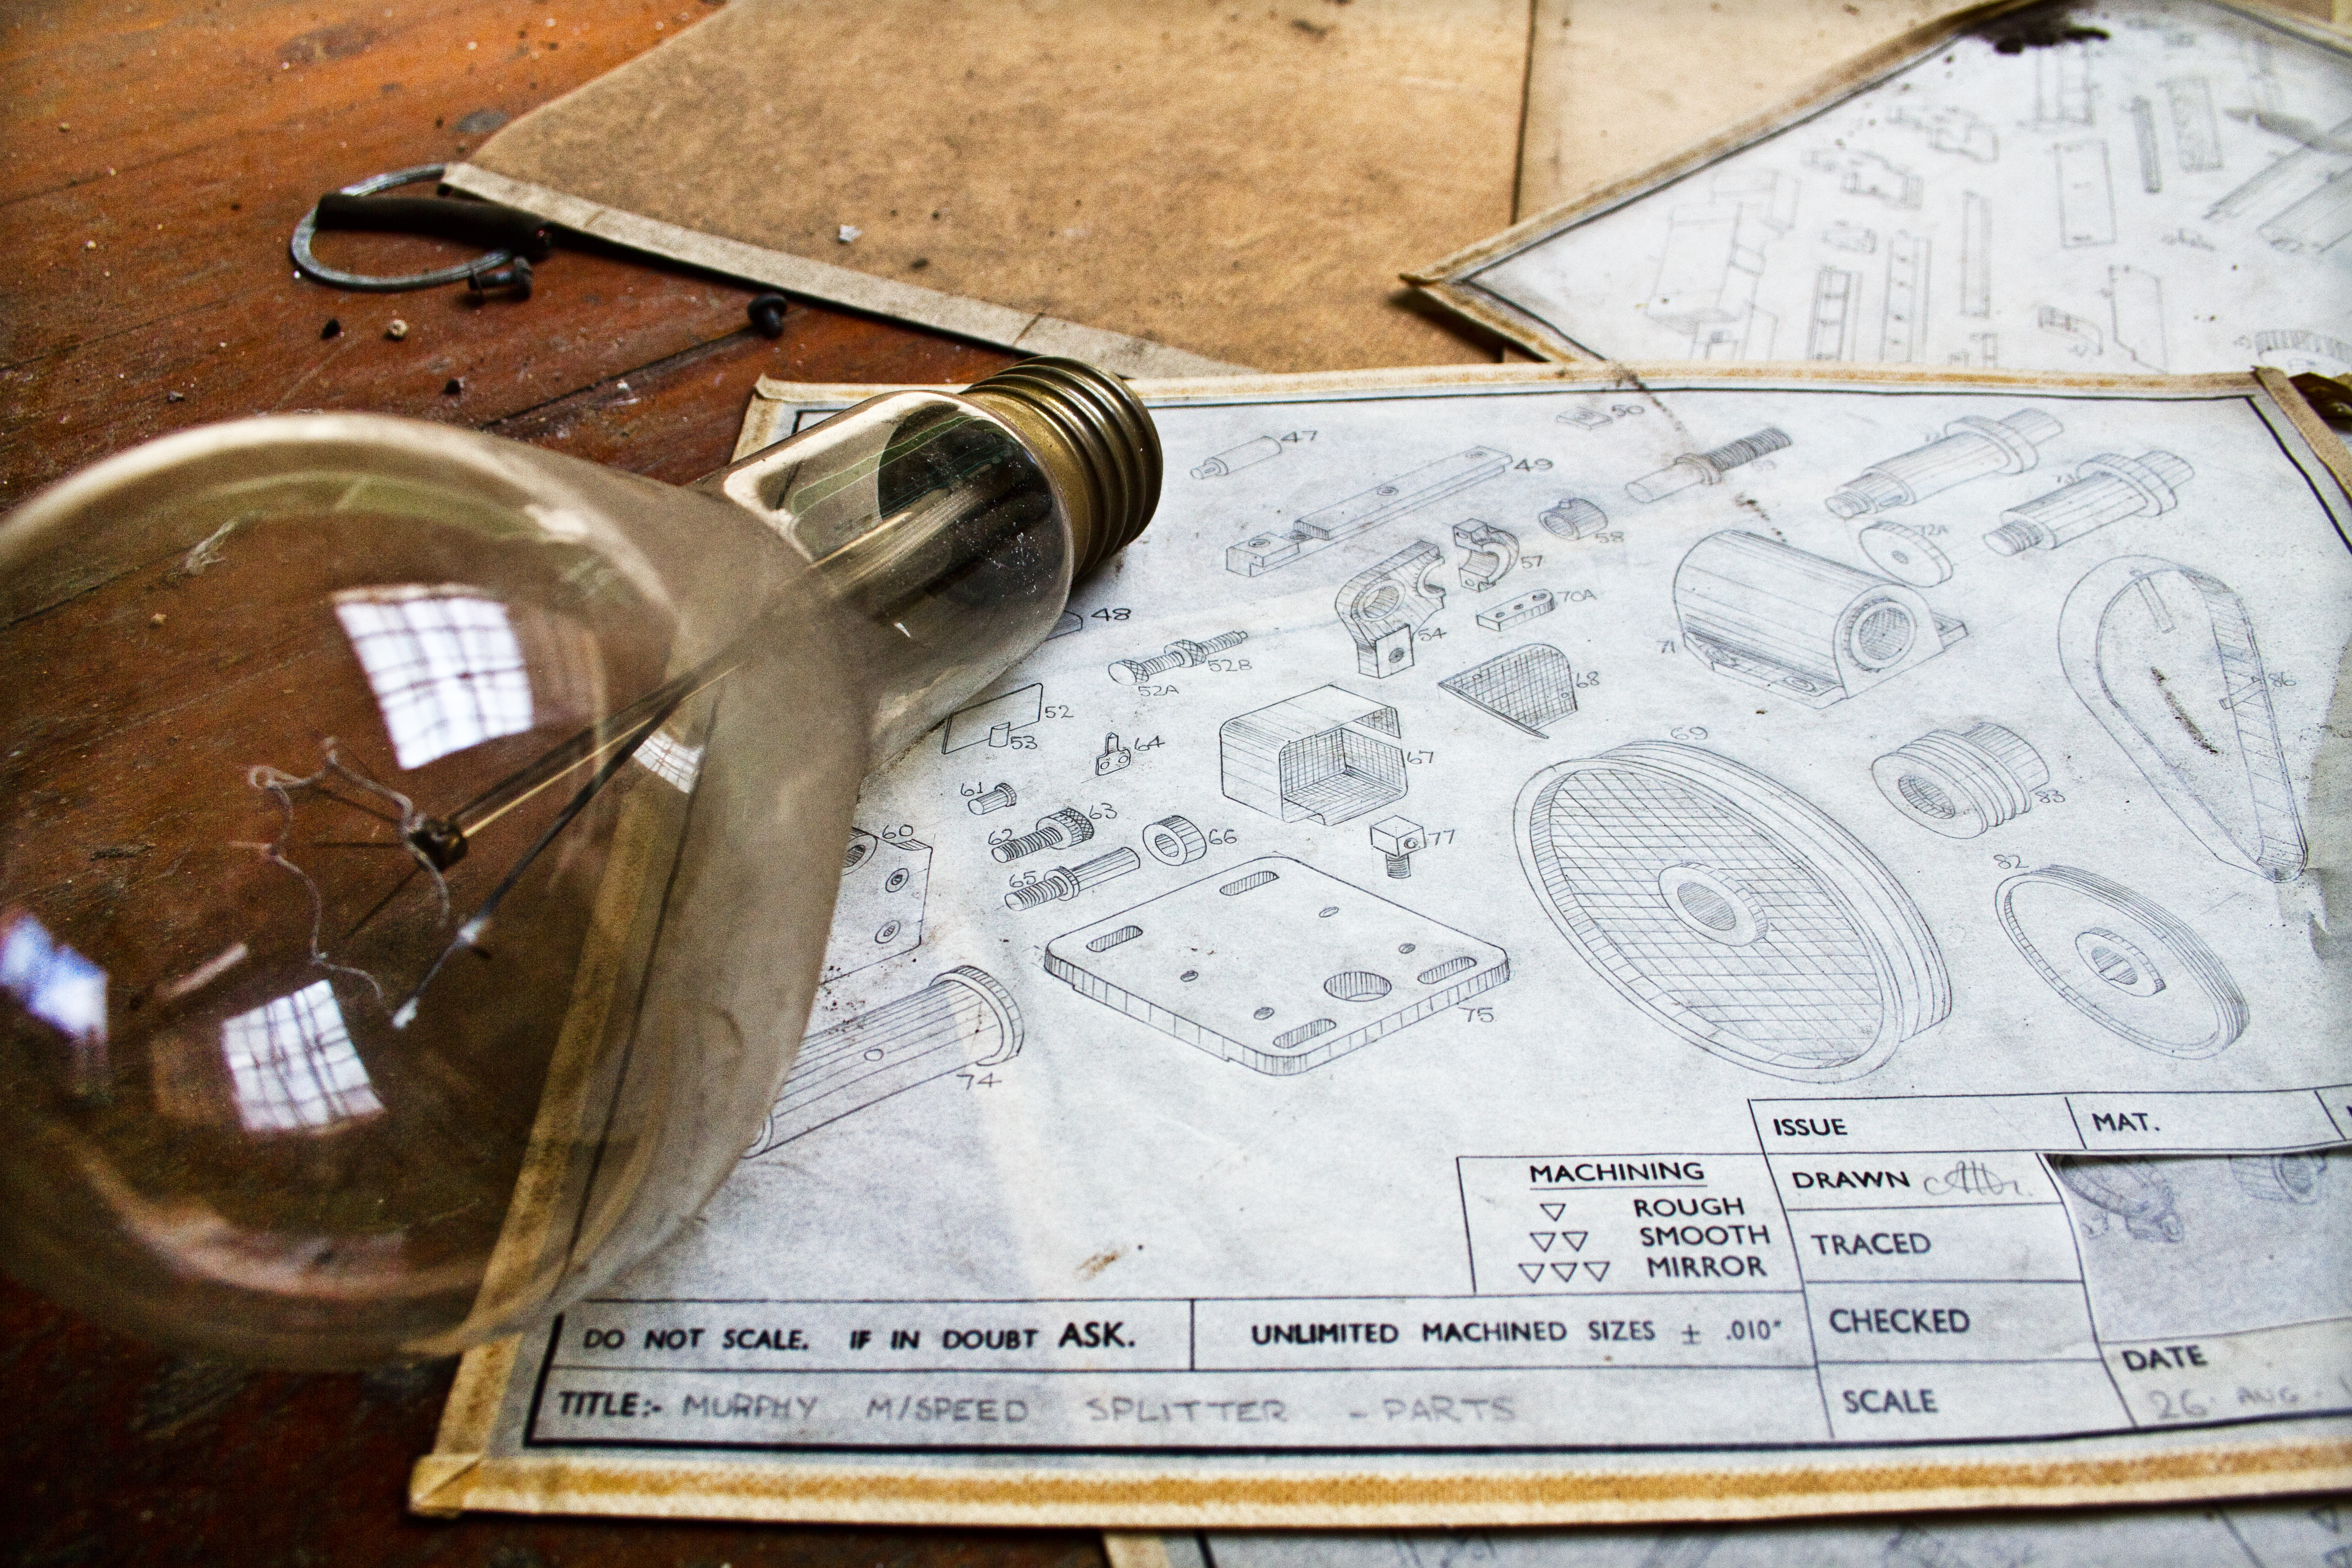 Image of hand-drawn machine schematics, scattered on a wooden table, with an antique lightbulb laying on the table in the foreground